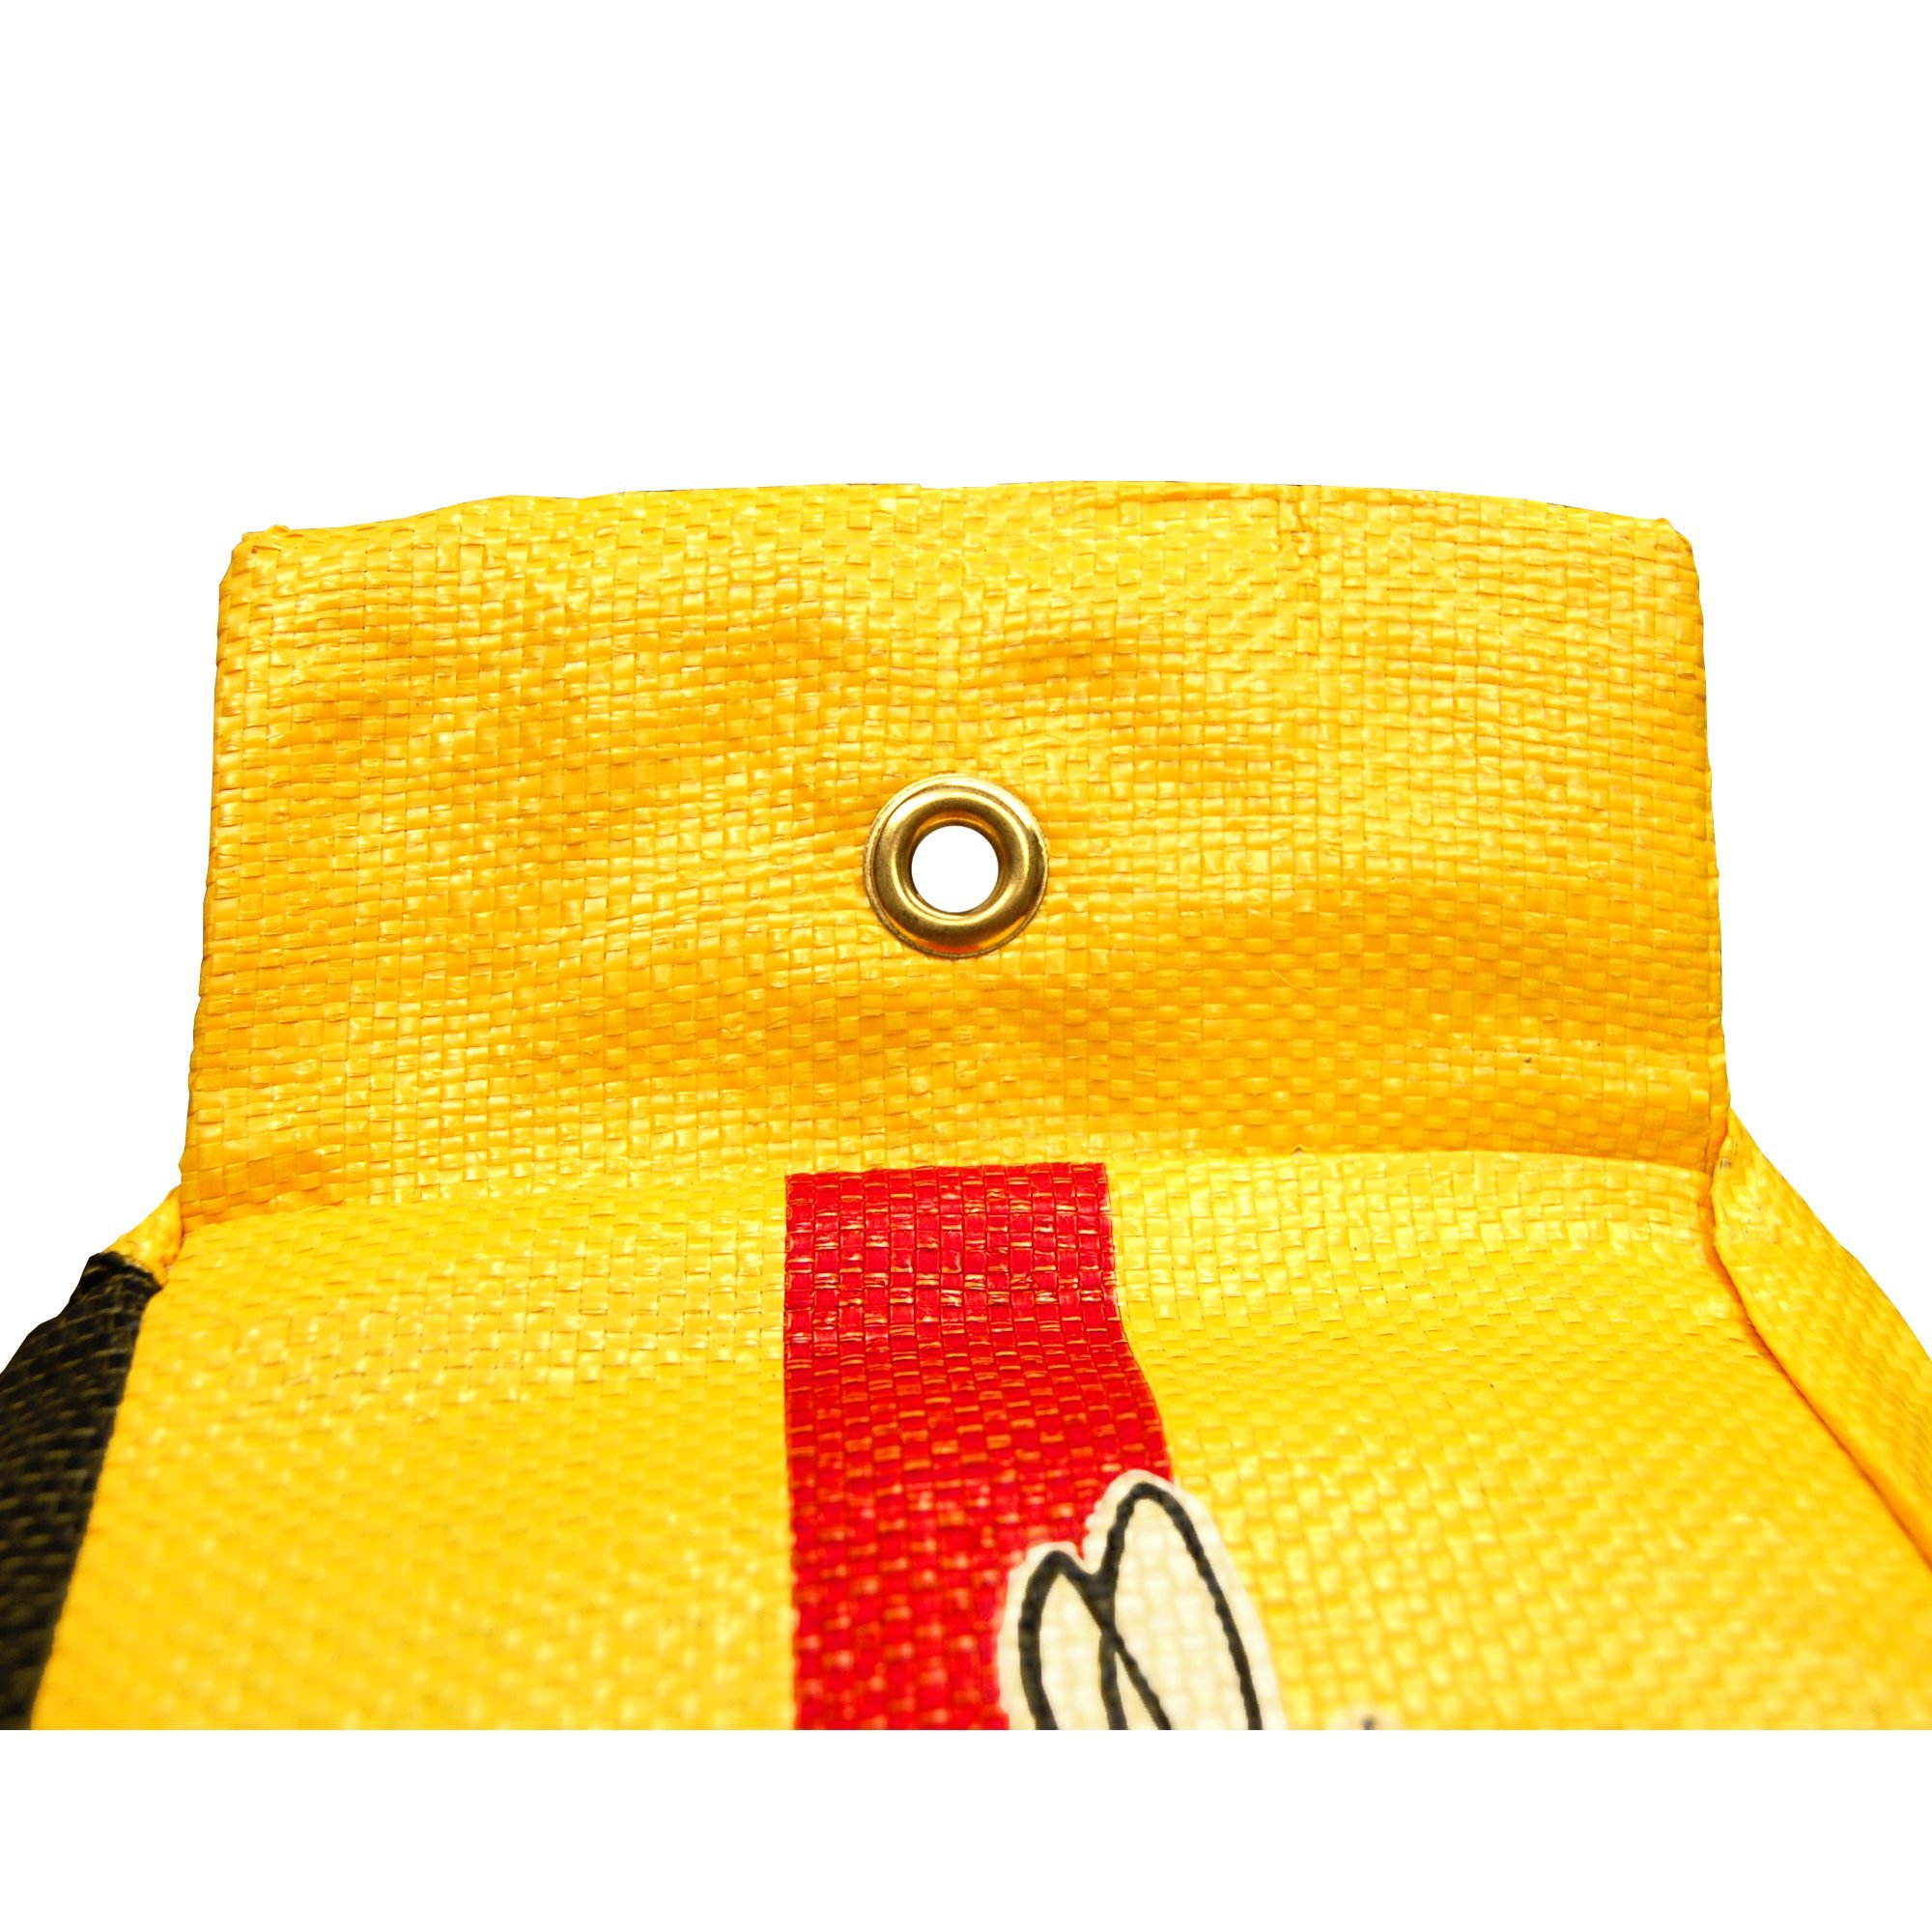 Morrell Yellow Jacket Stinger Field Point Bag Archery Target  - Great for Compound and Traditional Bows by Morrell (Image #9)